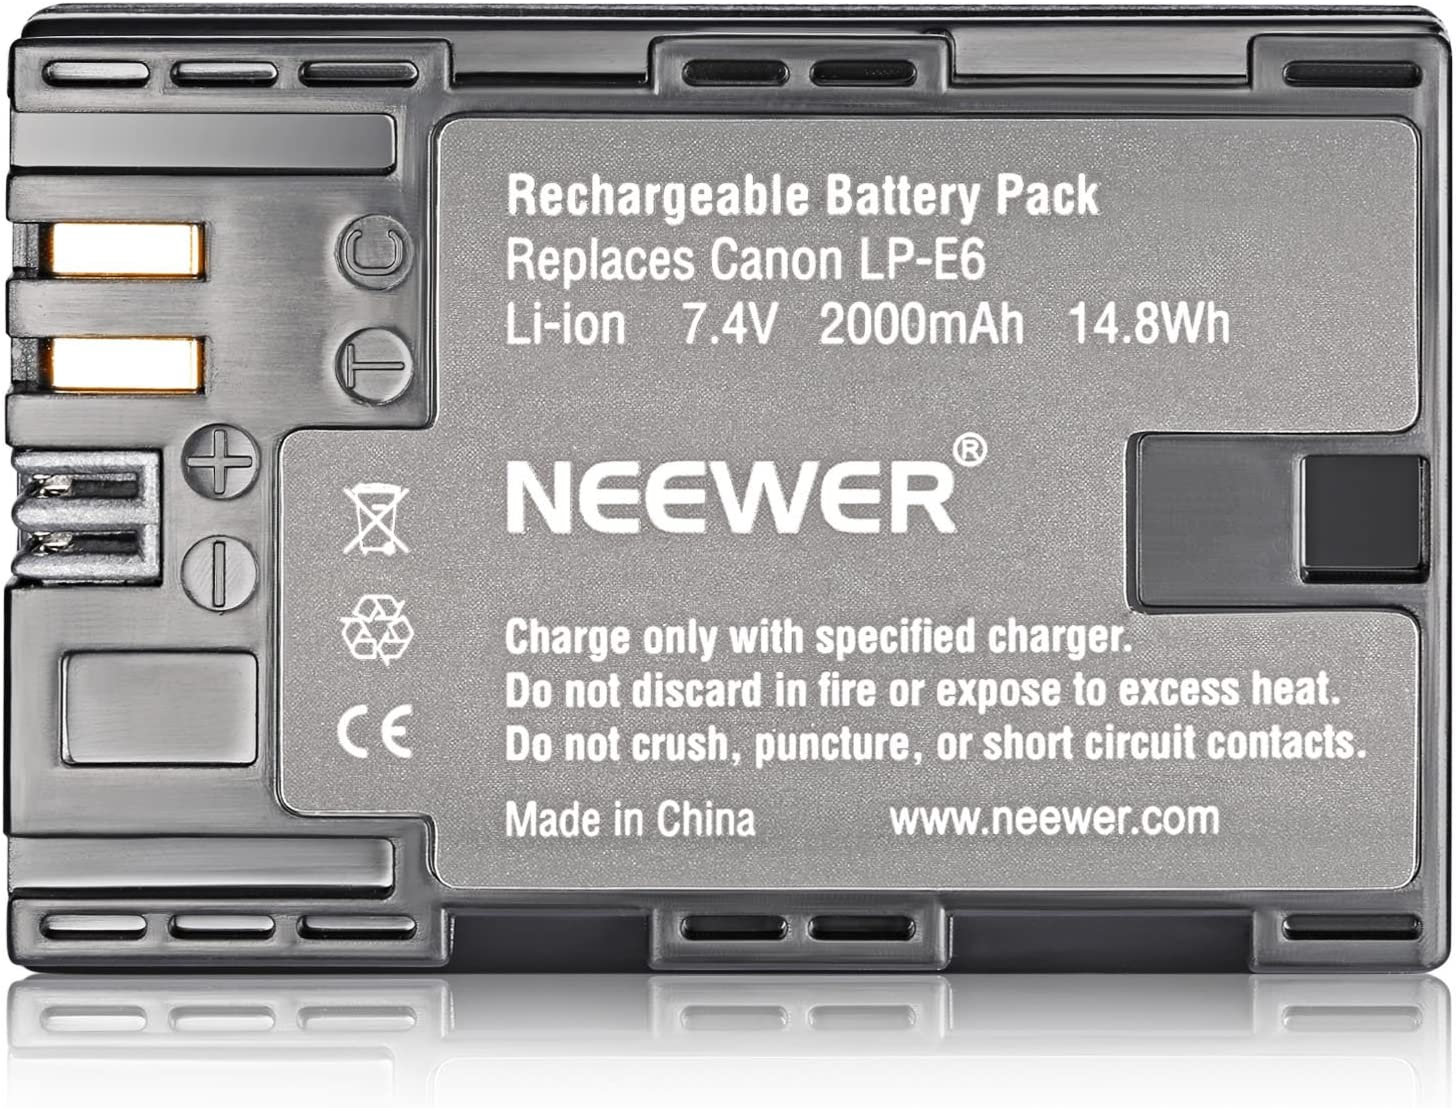 Neewer LP-E6 LP-E6N Battery Charger Rechargeable Batteries set Compatible with Canon 5D Mark II III IV 80D 70D 60D 6D EOS 5Ds 5D2 5D3 5DSR 5D4 and More 2-Pack 2000mAh, Dual USB and Type-C Input